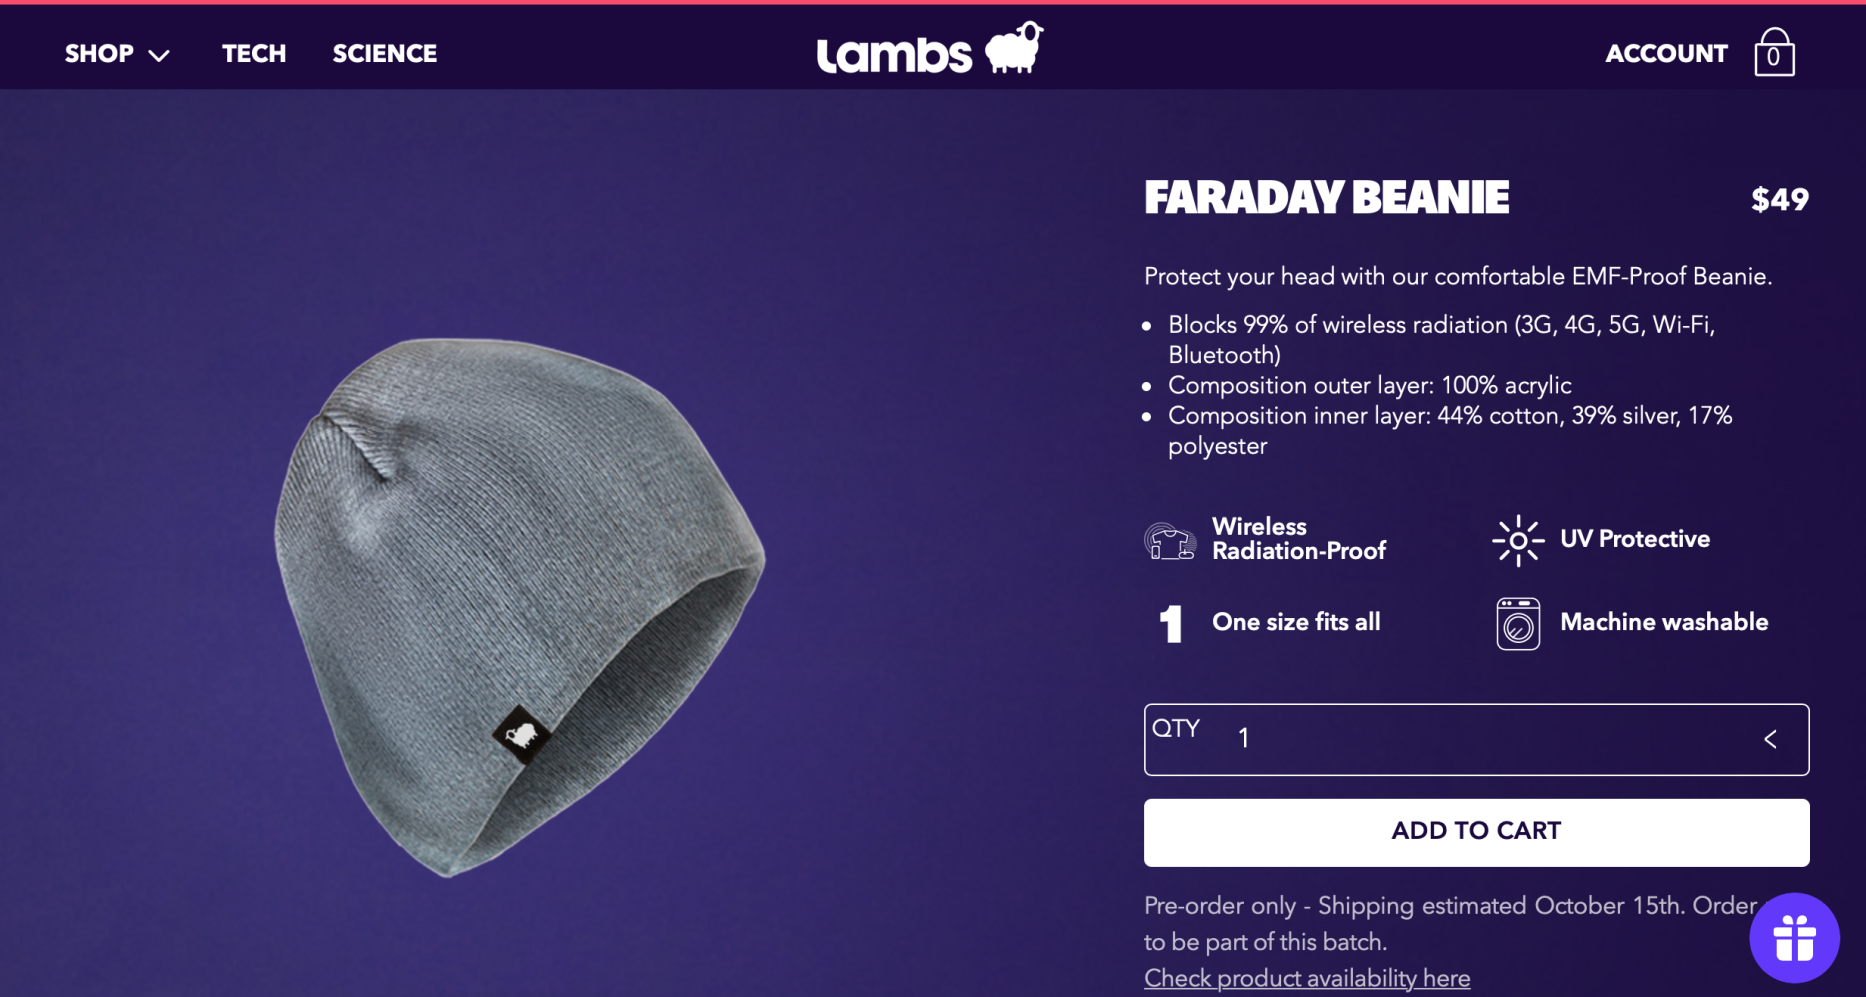 Faraday_Beanie.png?width=1866&height=997